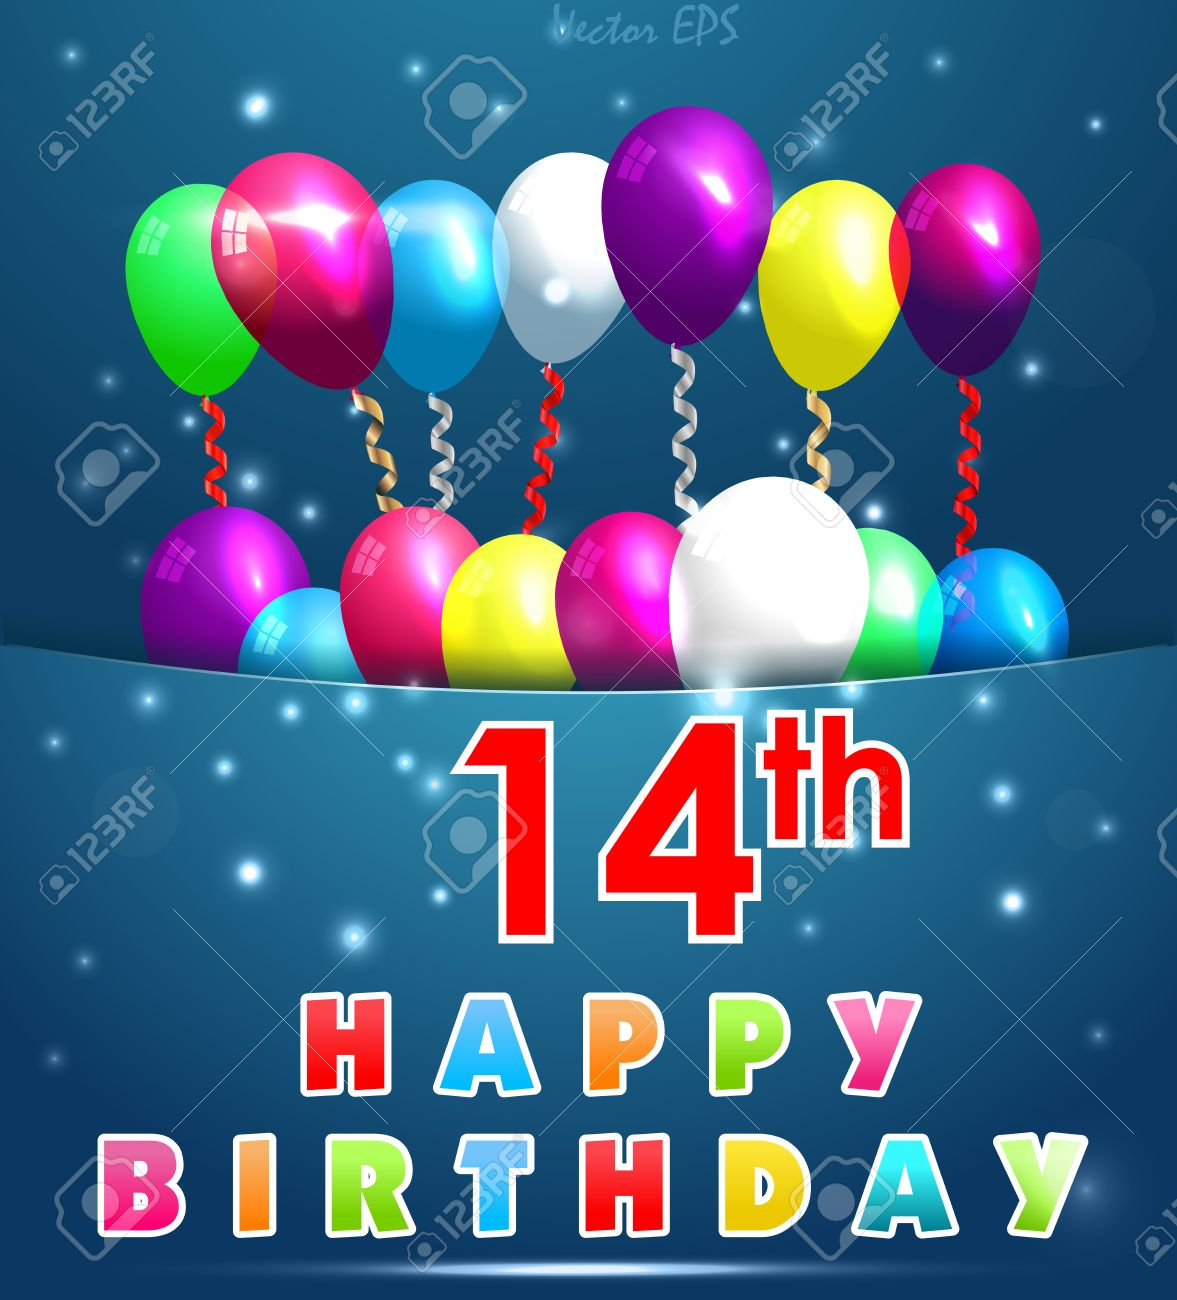 14 Year Happy Birthday Card With Balloons And Ribbons 14th Stock Vector